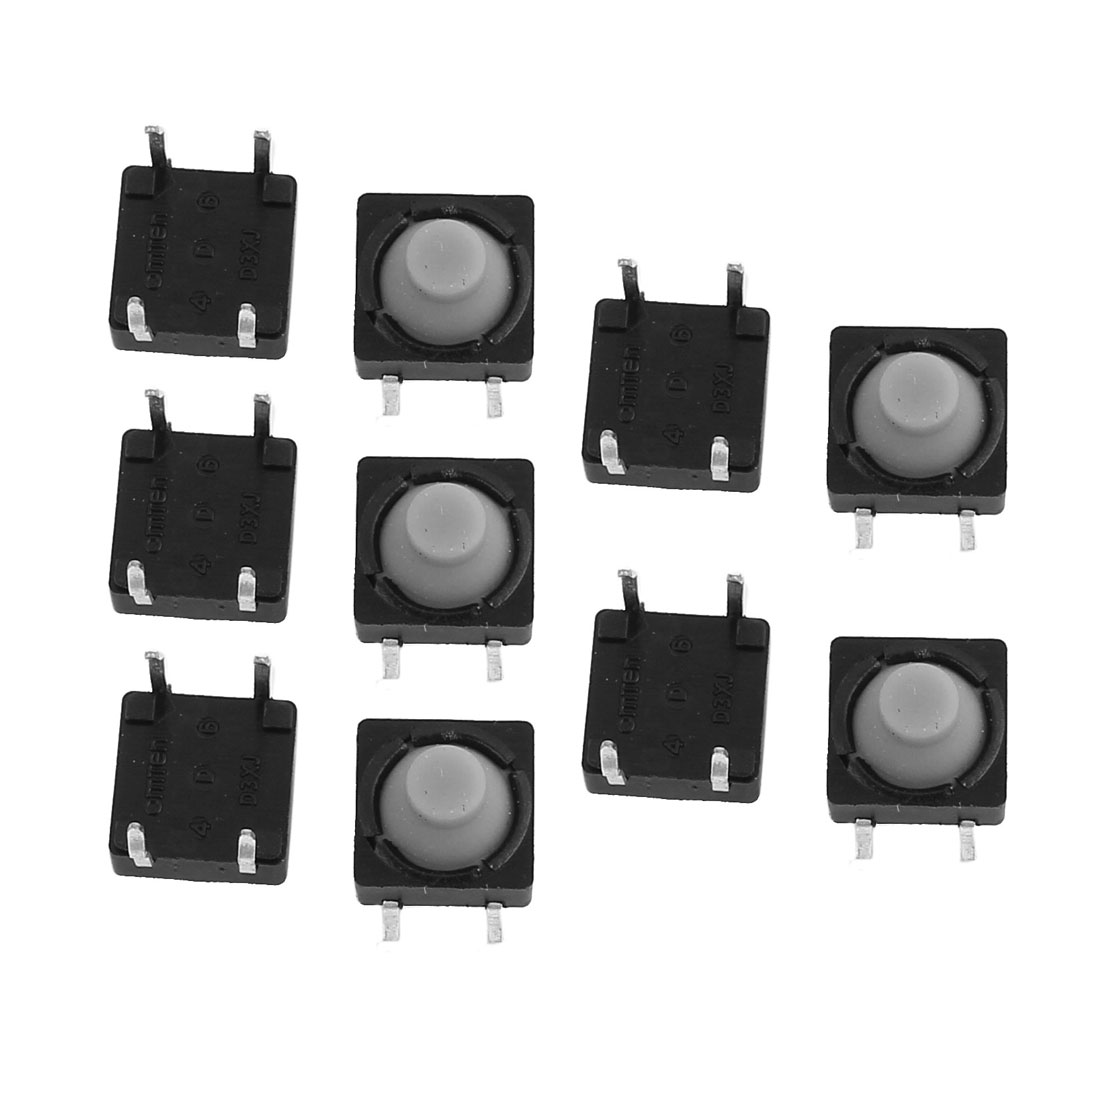 10Pcs 8mmx8mm Panel PCB Momentary Tactile Tact Push Button Switch